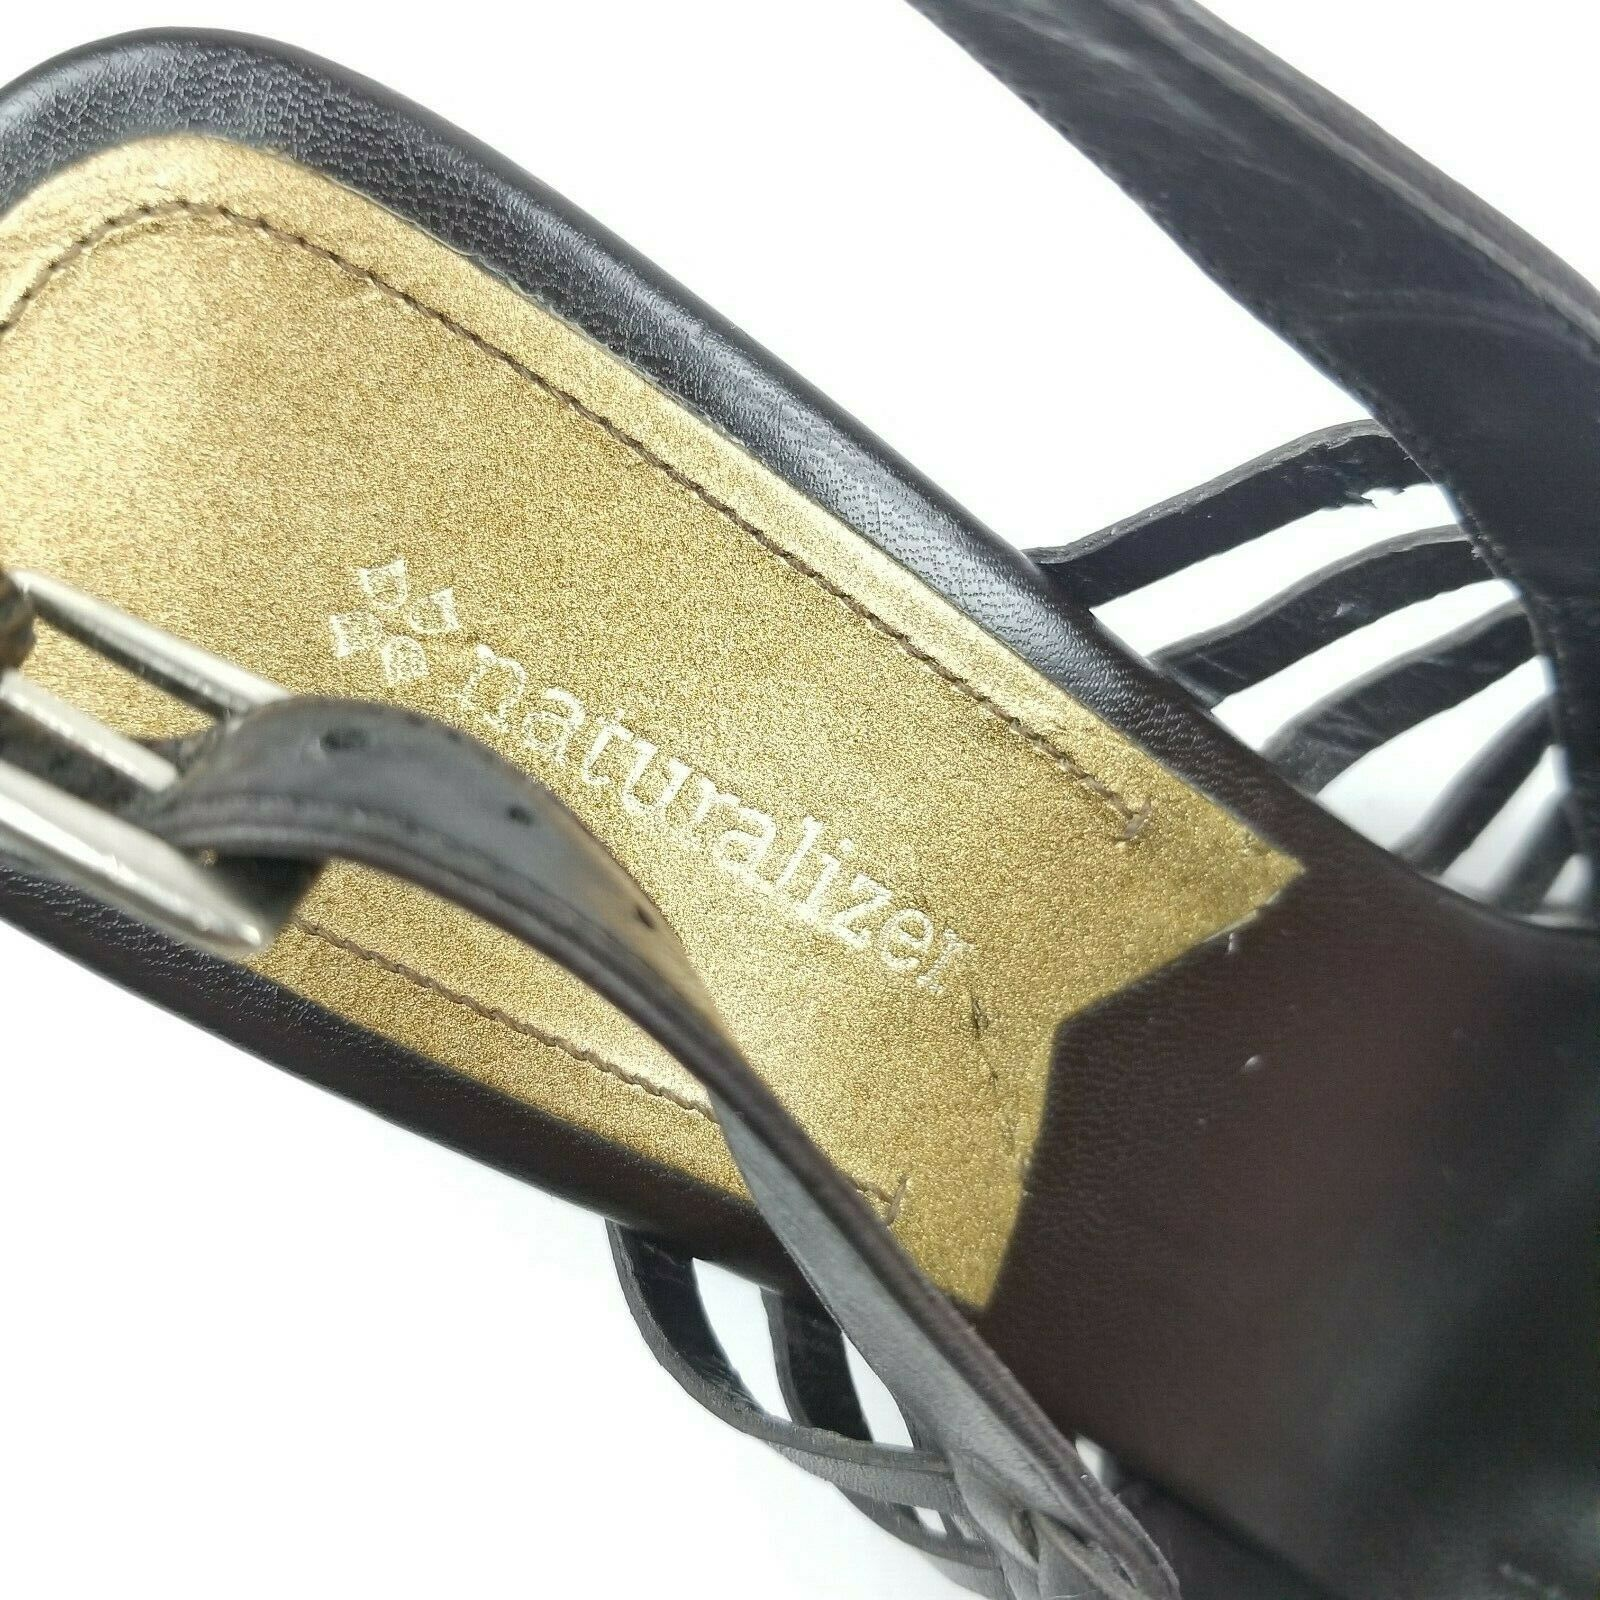 Naturalizer Womens Brown Leather Strappy Sandals Size 10